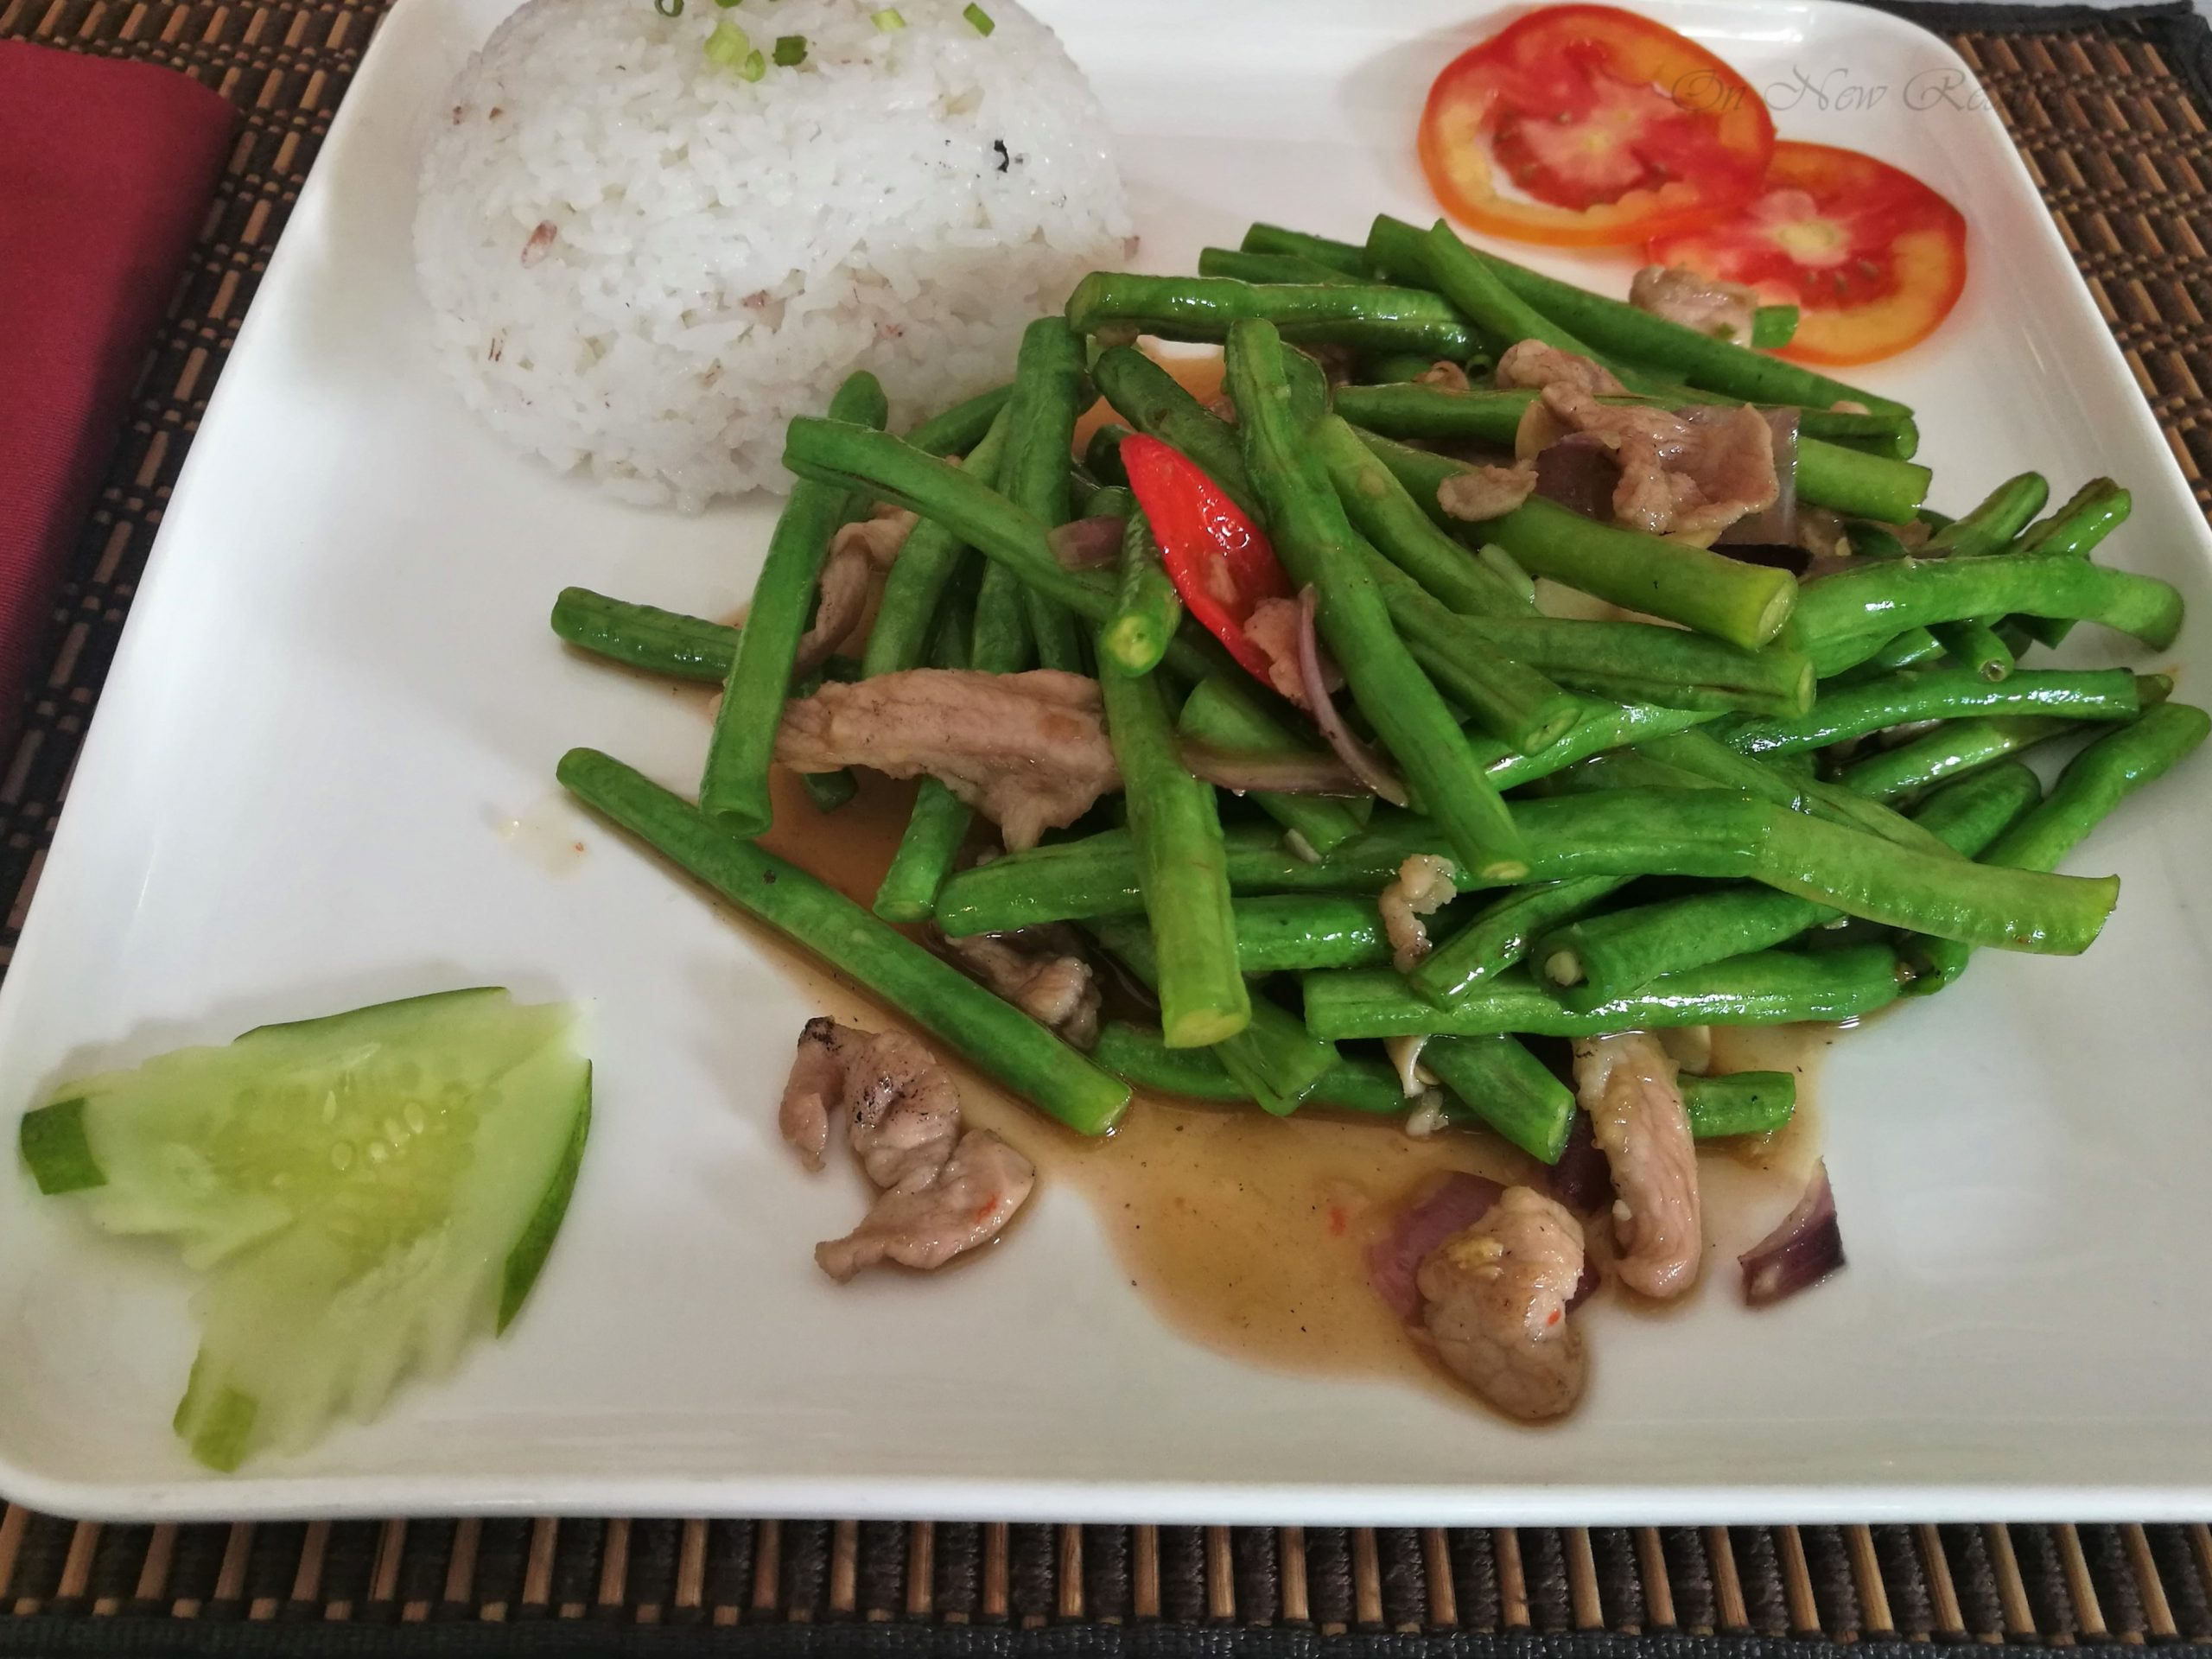 Fried-pork-morning-glory-Cambodia-scaled